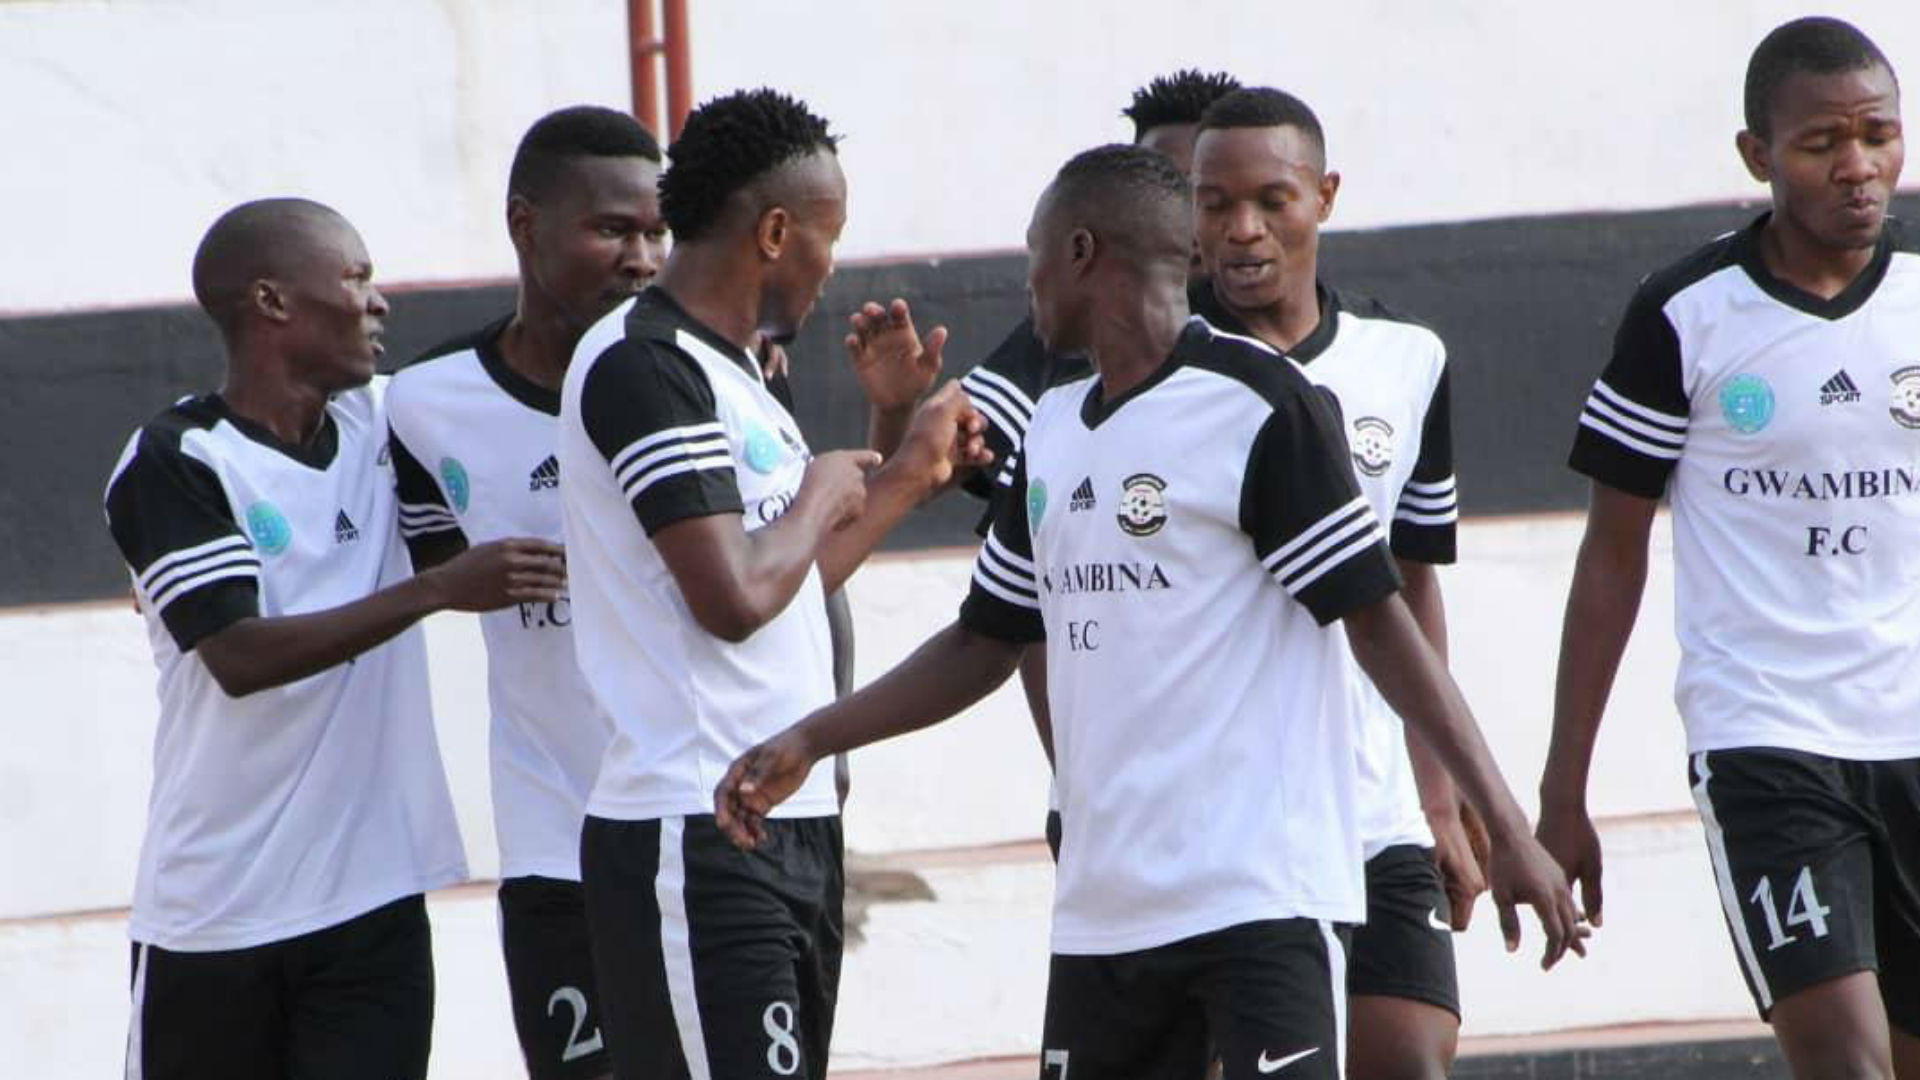 Mmassi: Gwambina FC ready to fight with the best in Tanzania league |  Goal.com